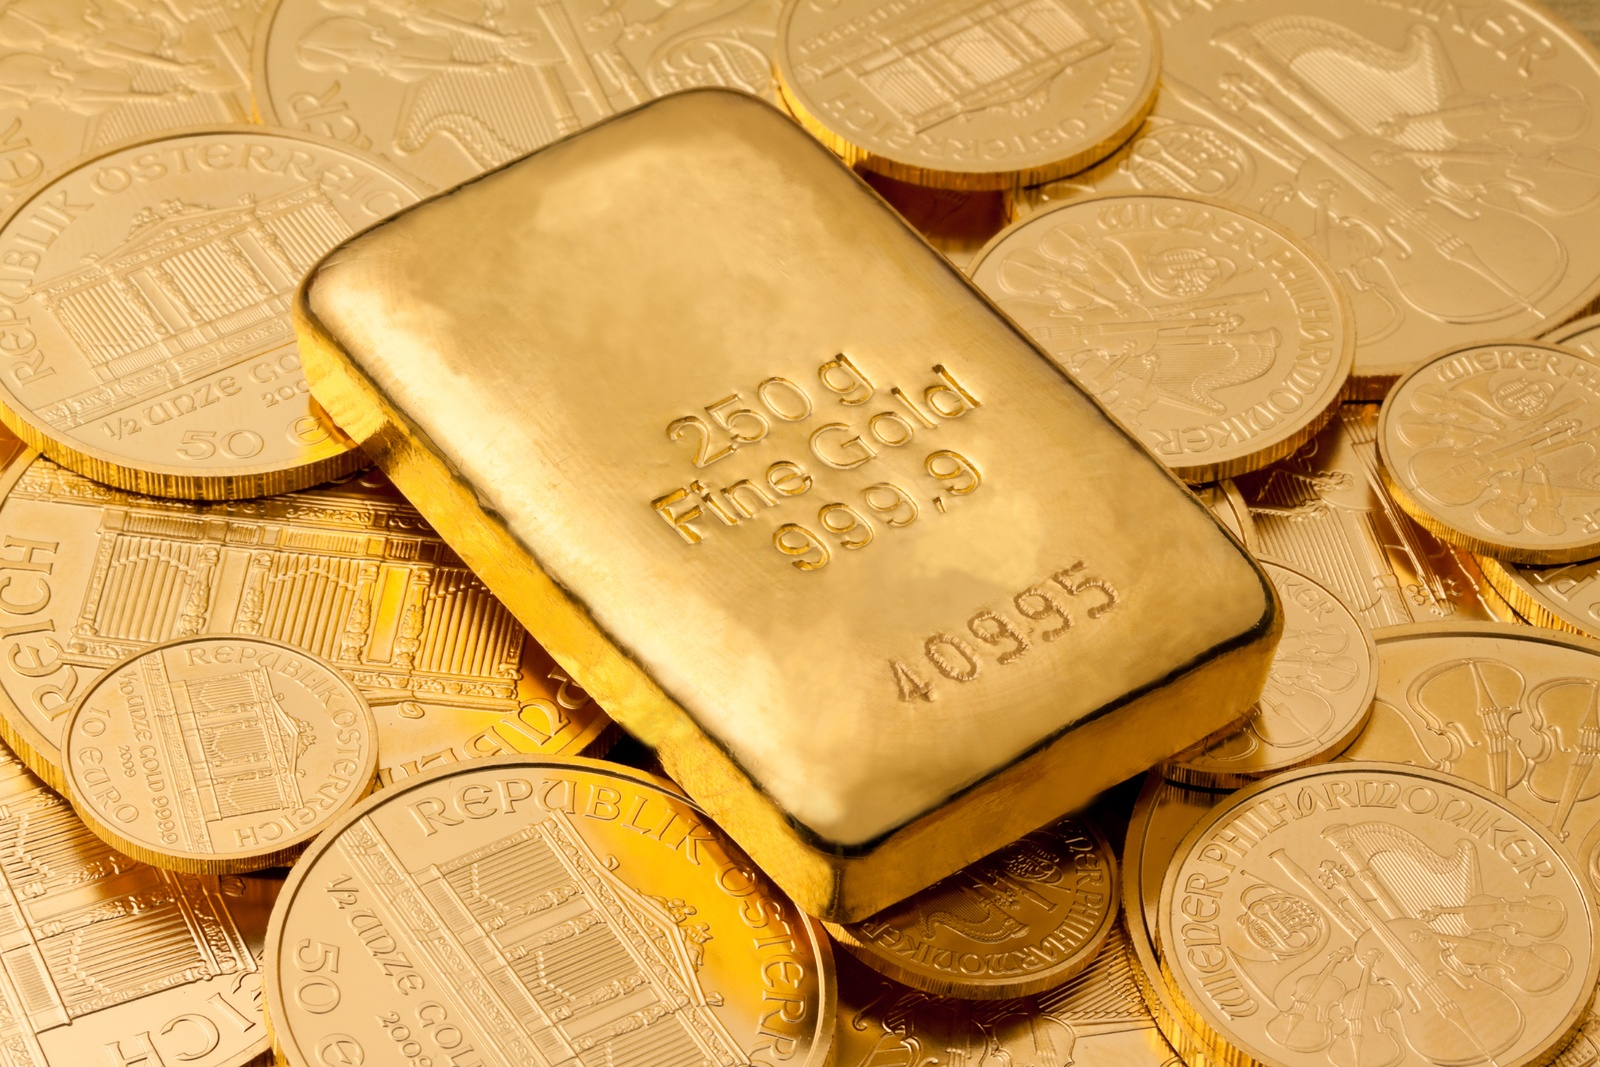 Why Gold May Not Be the Safe Haven Investment It Is Touted To Be